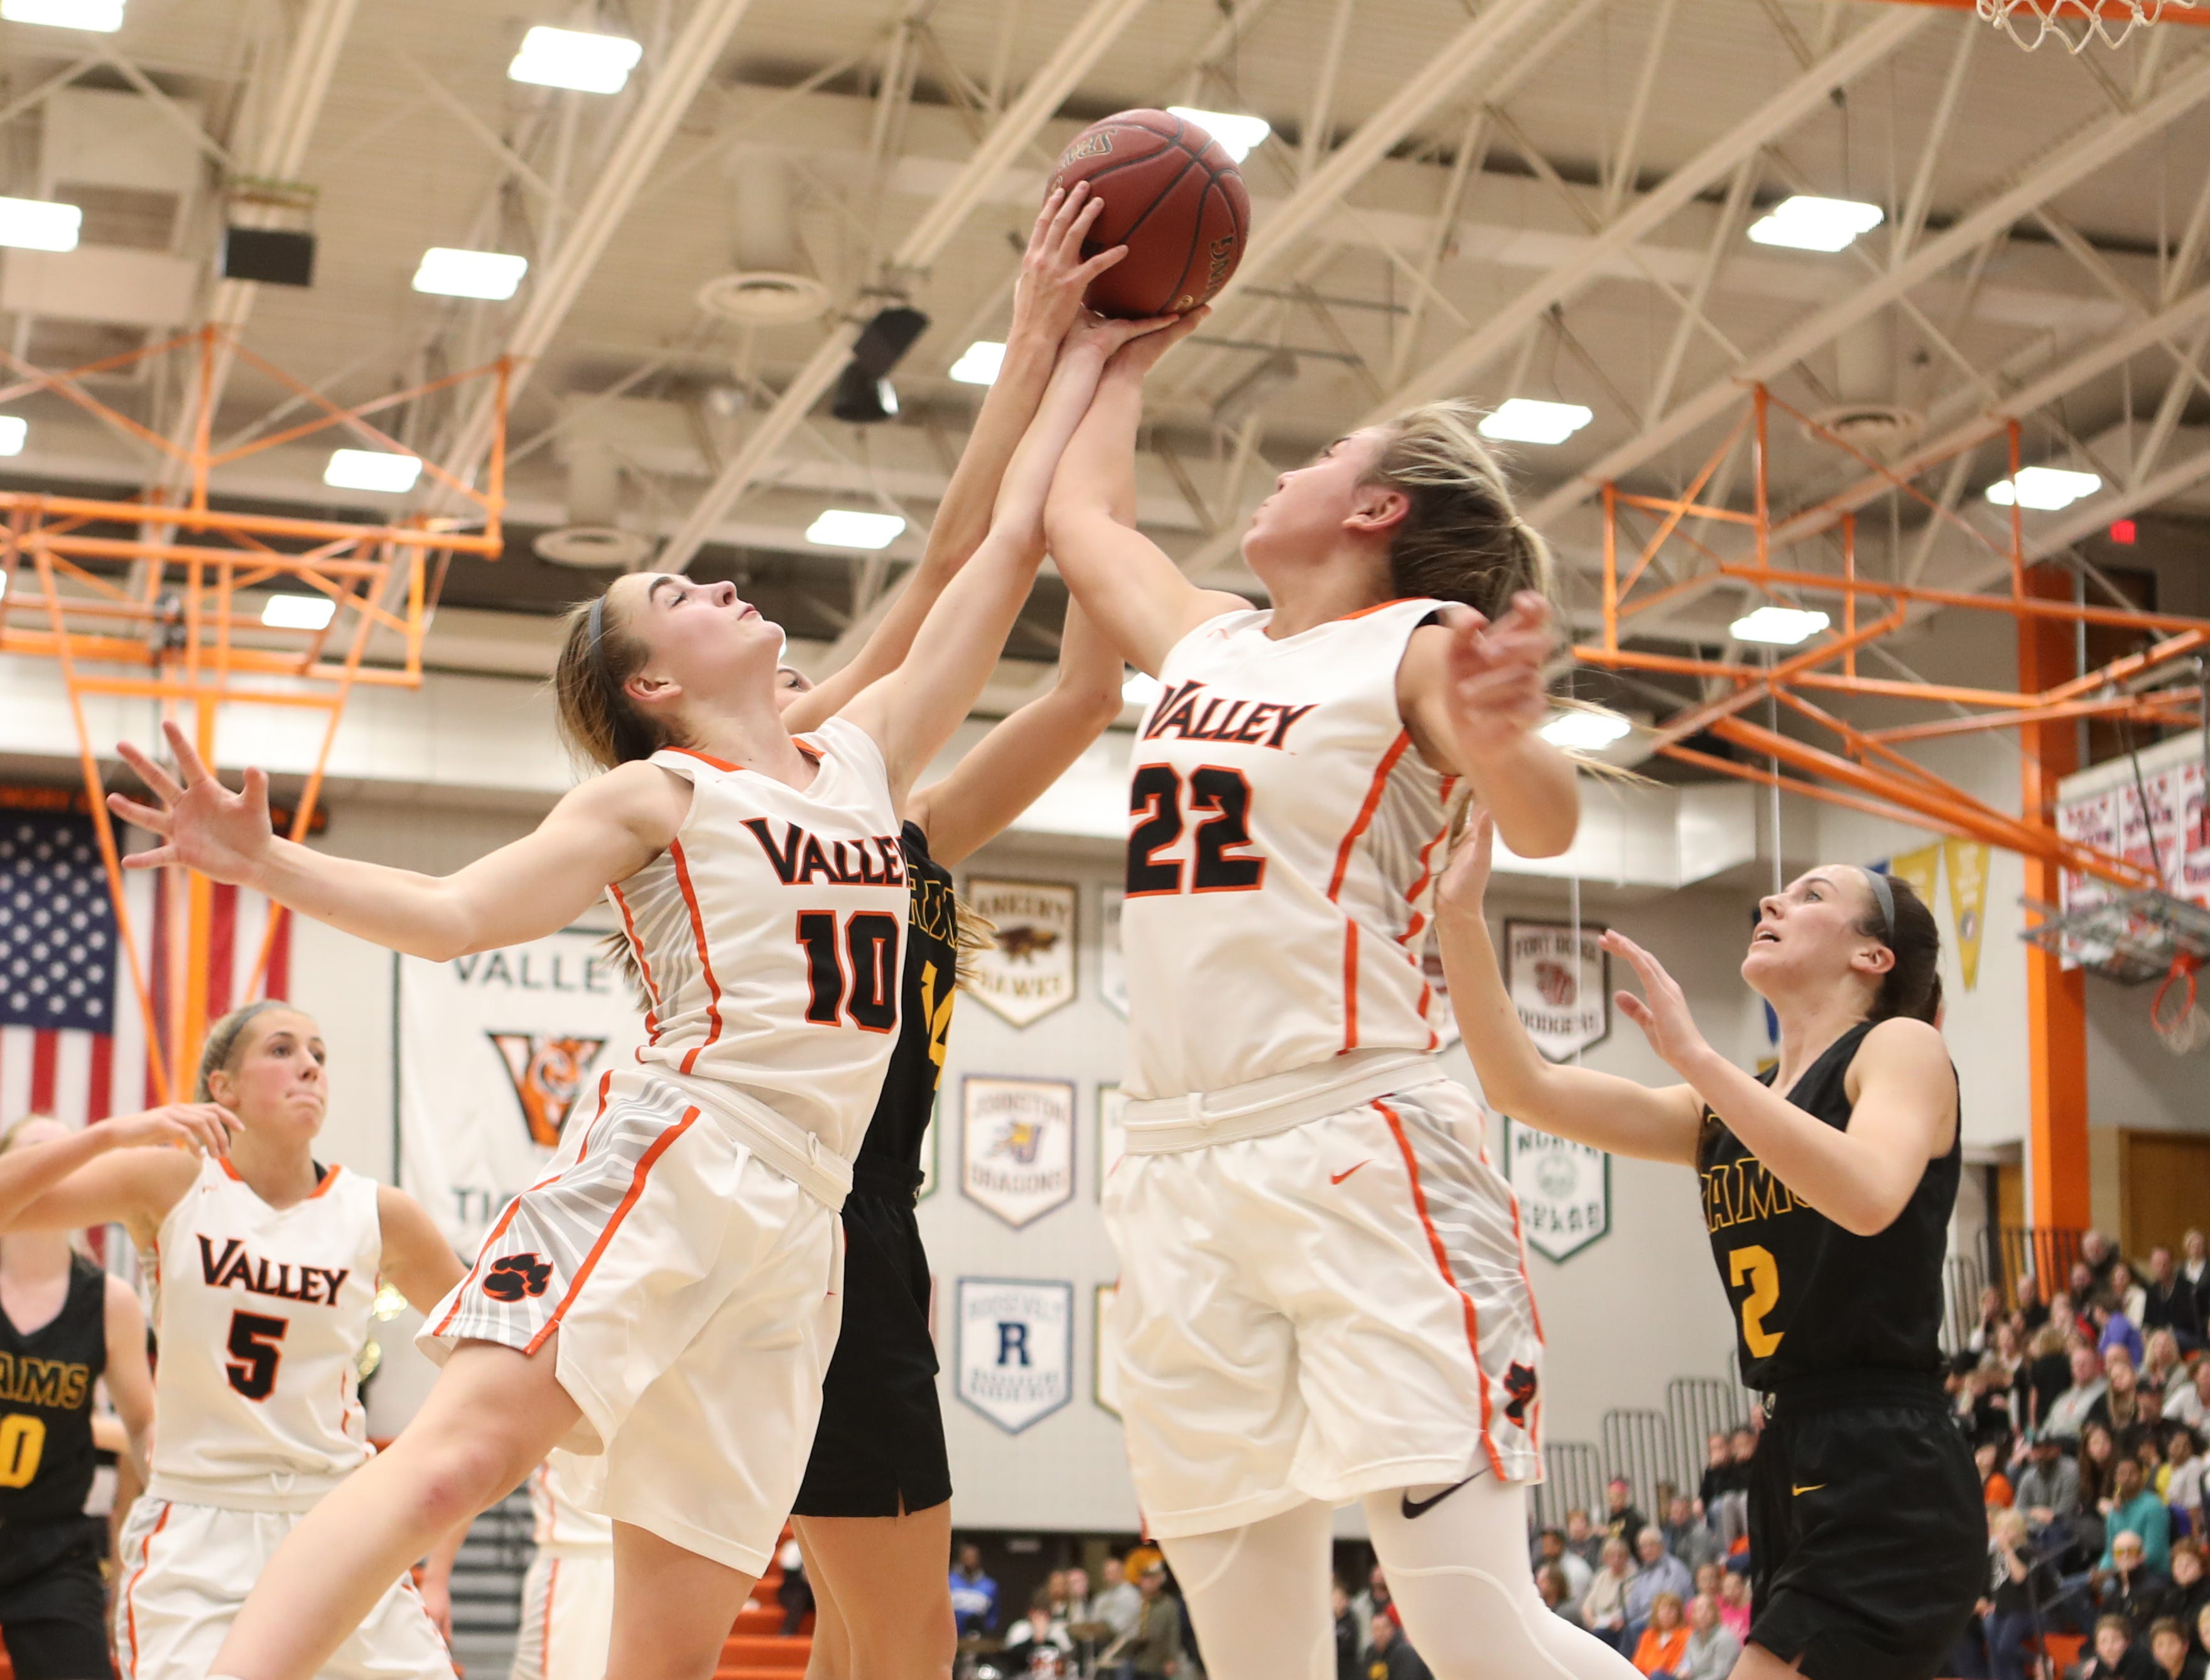 Valley Tigers' Hayley Chappell (10) and Alex Honnold (22) battle Southeast Polk Rams Jessica Stuart (14) for the rebound during a girls basketball game at Valley High School on Jan. 11, 2019. The Rams won, 91-72.